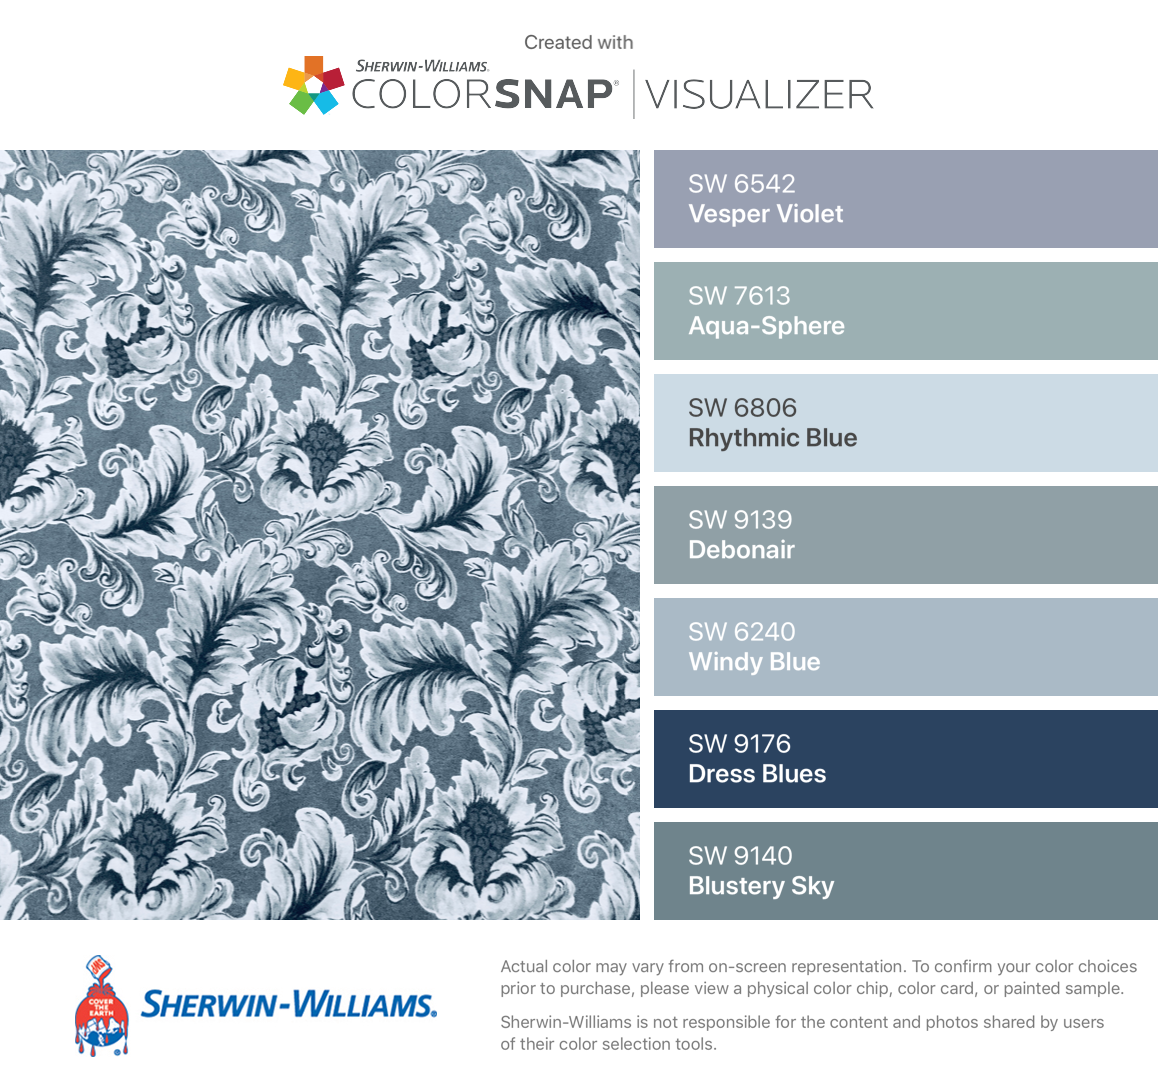 I Found These Colors With Colorsnap Visualizer For Iphone By Sherwin Williams Vesper Violet Sw 6542 Aqua S Paint Colors For Home Paint Colors House Colors [ 1088 x 1158 Pixel ]